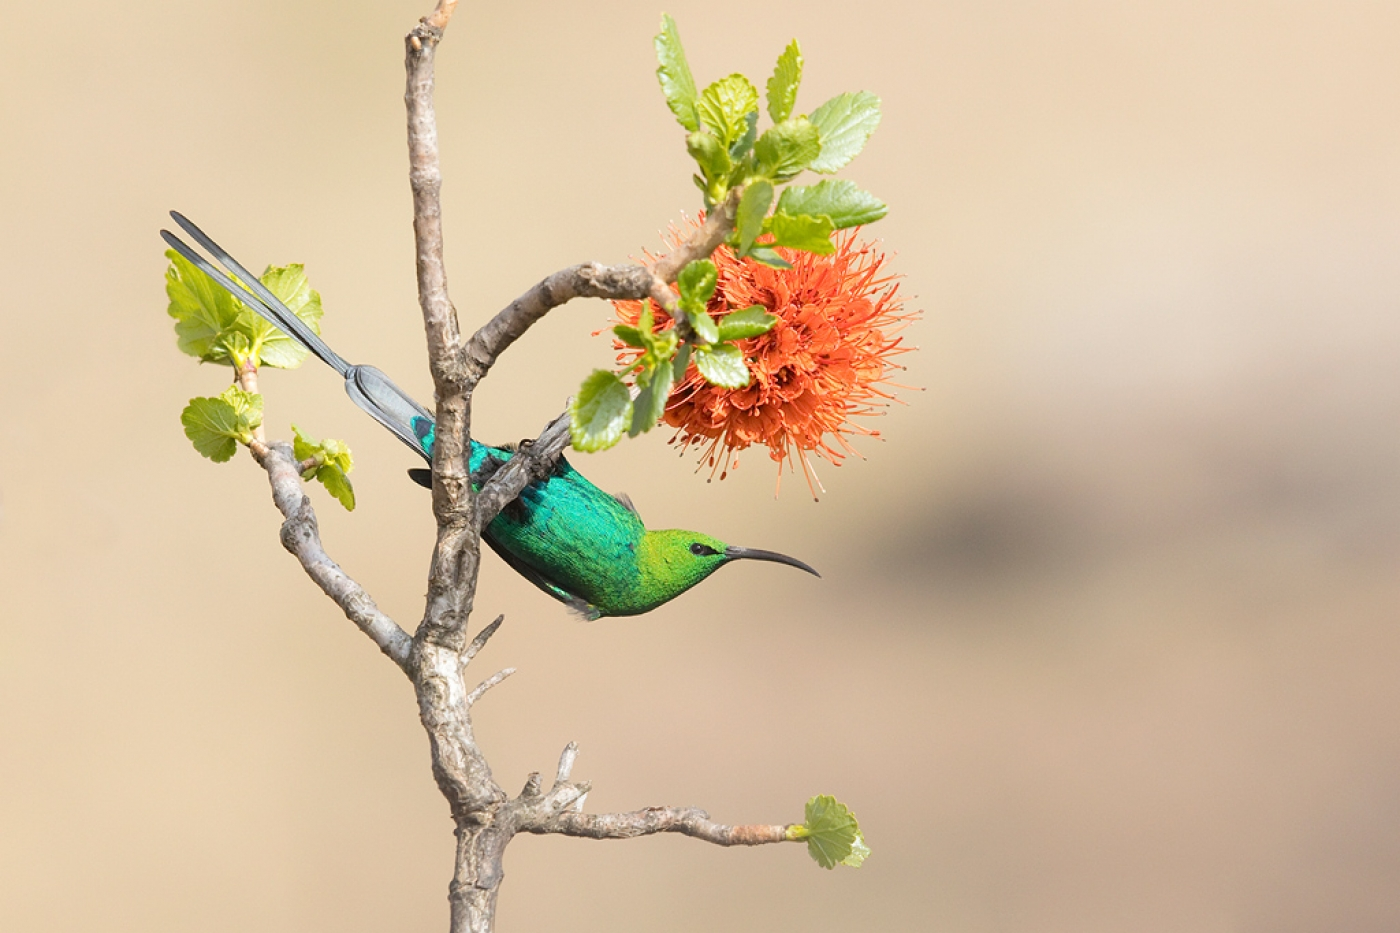 Malachite Sunbird – Giant's Castle, Central Drakensberg, KZN, South Africa